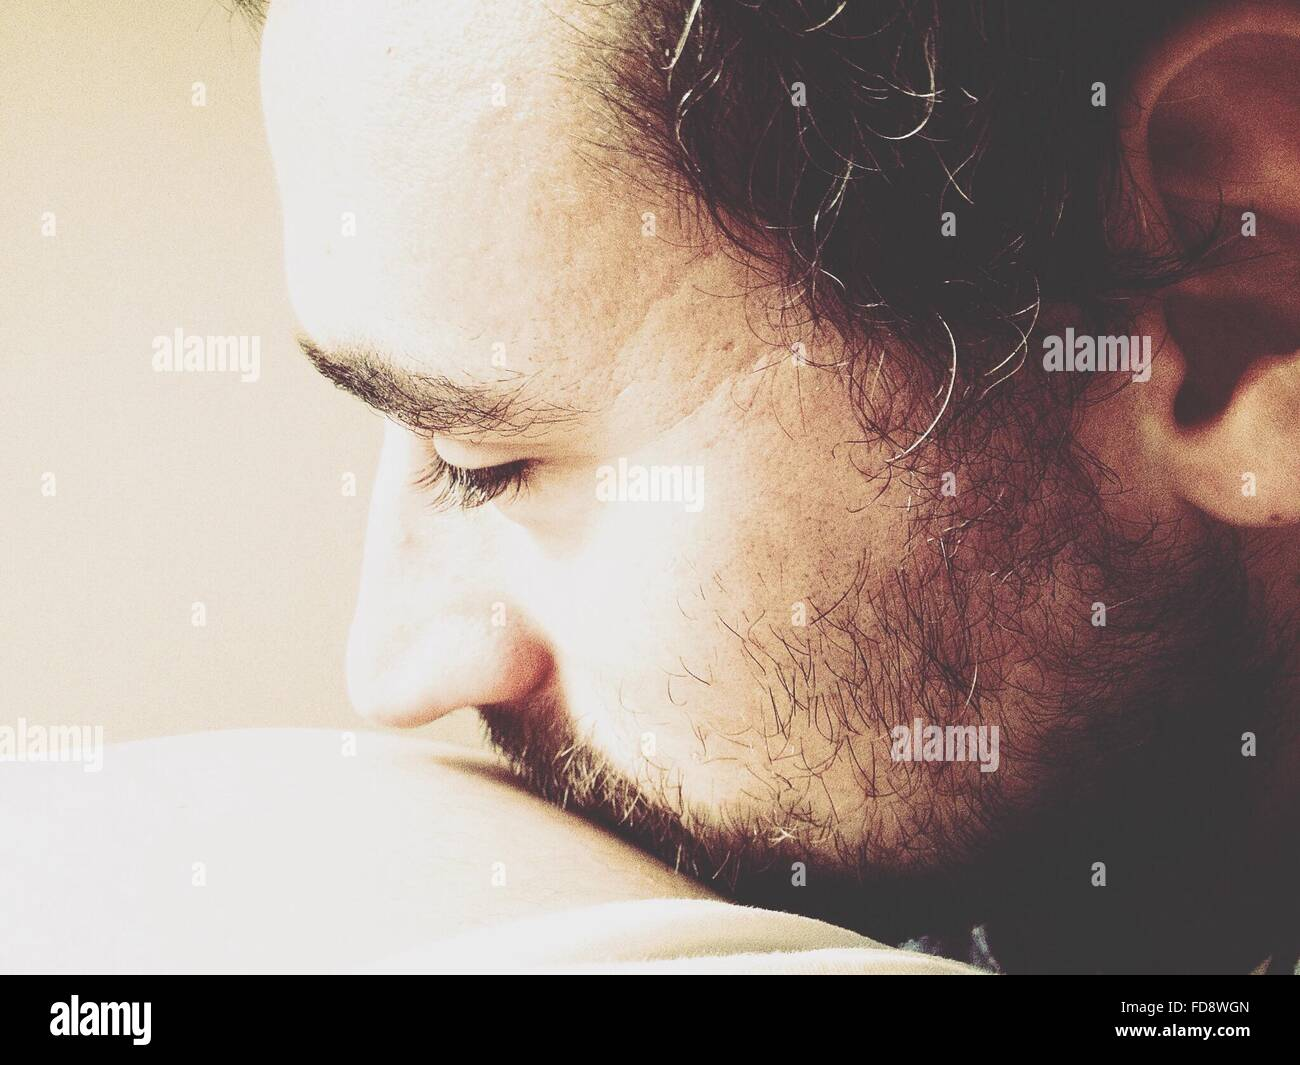 Cropped Image Of Mid Adult Man Face With Beard - Stock Image